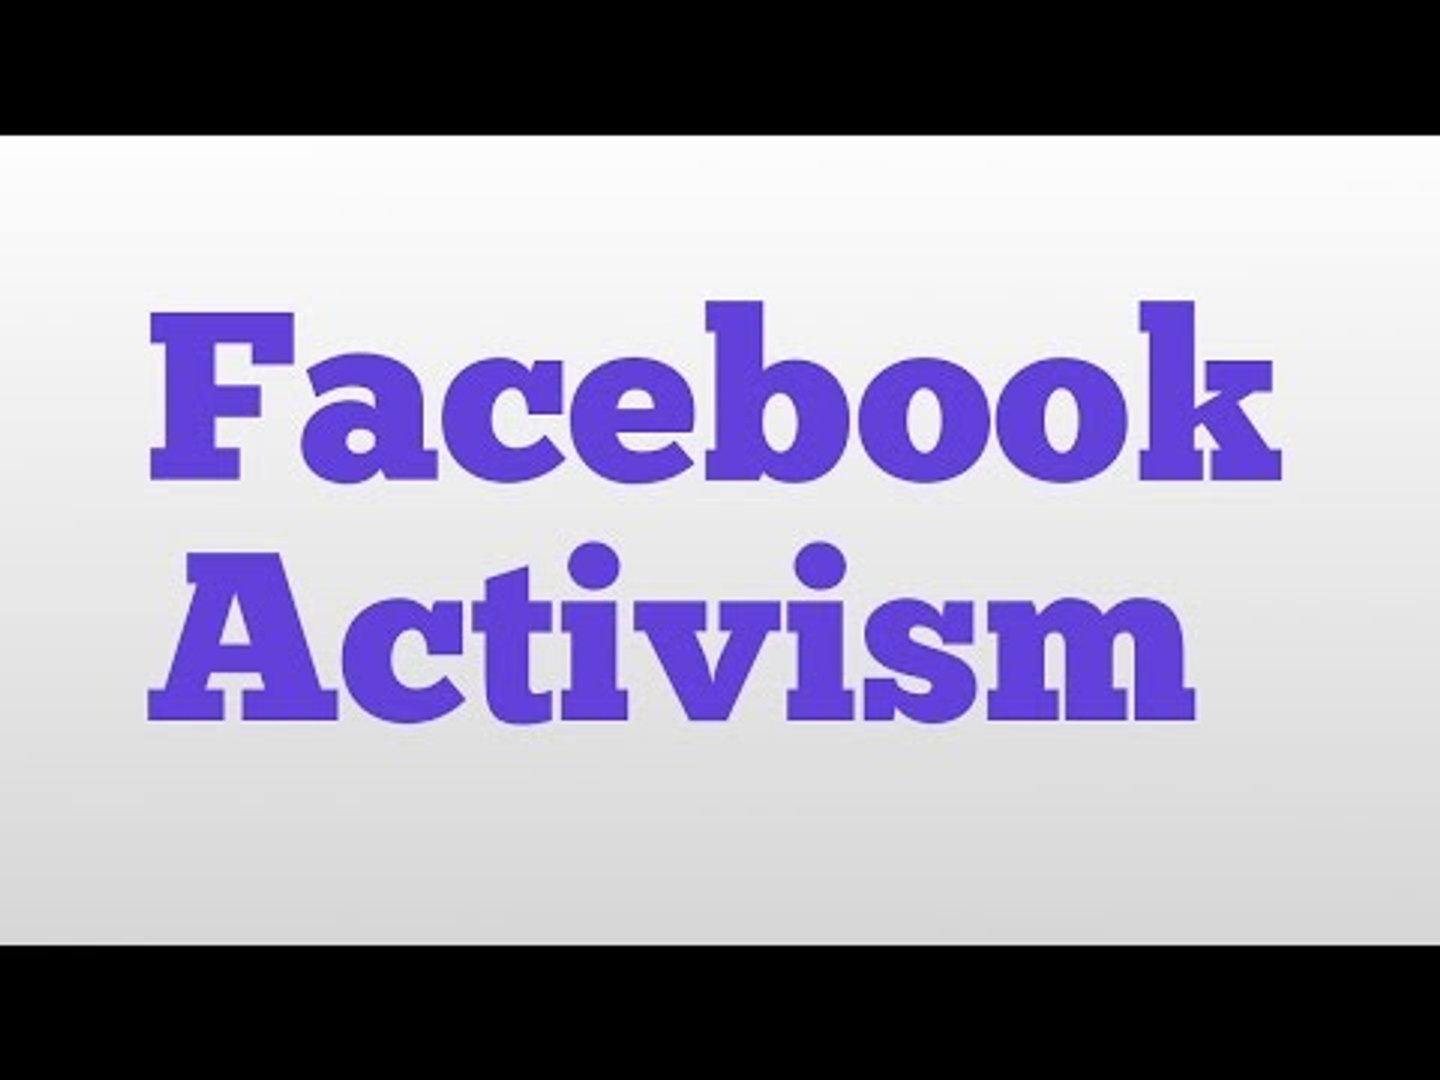 Facebook Activism meaning and pronunciation